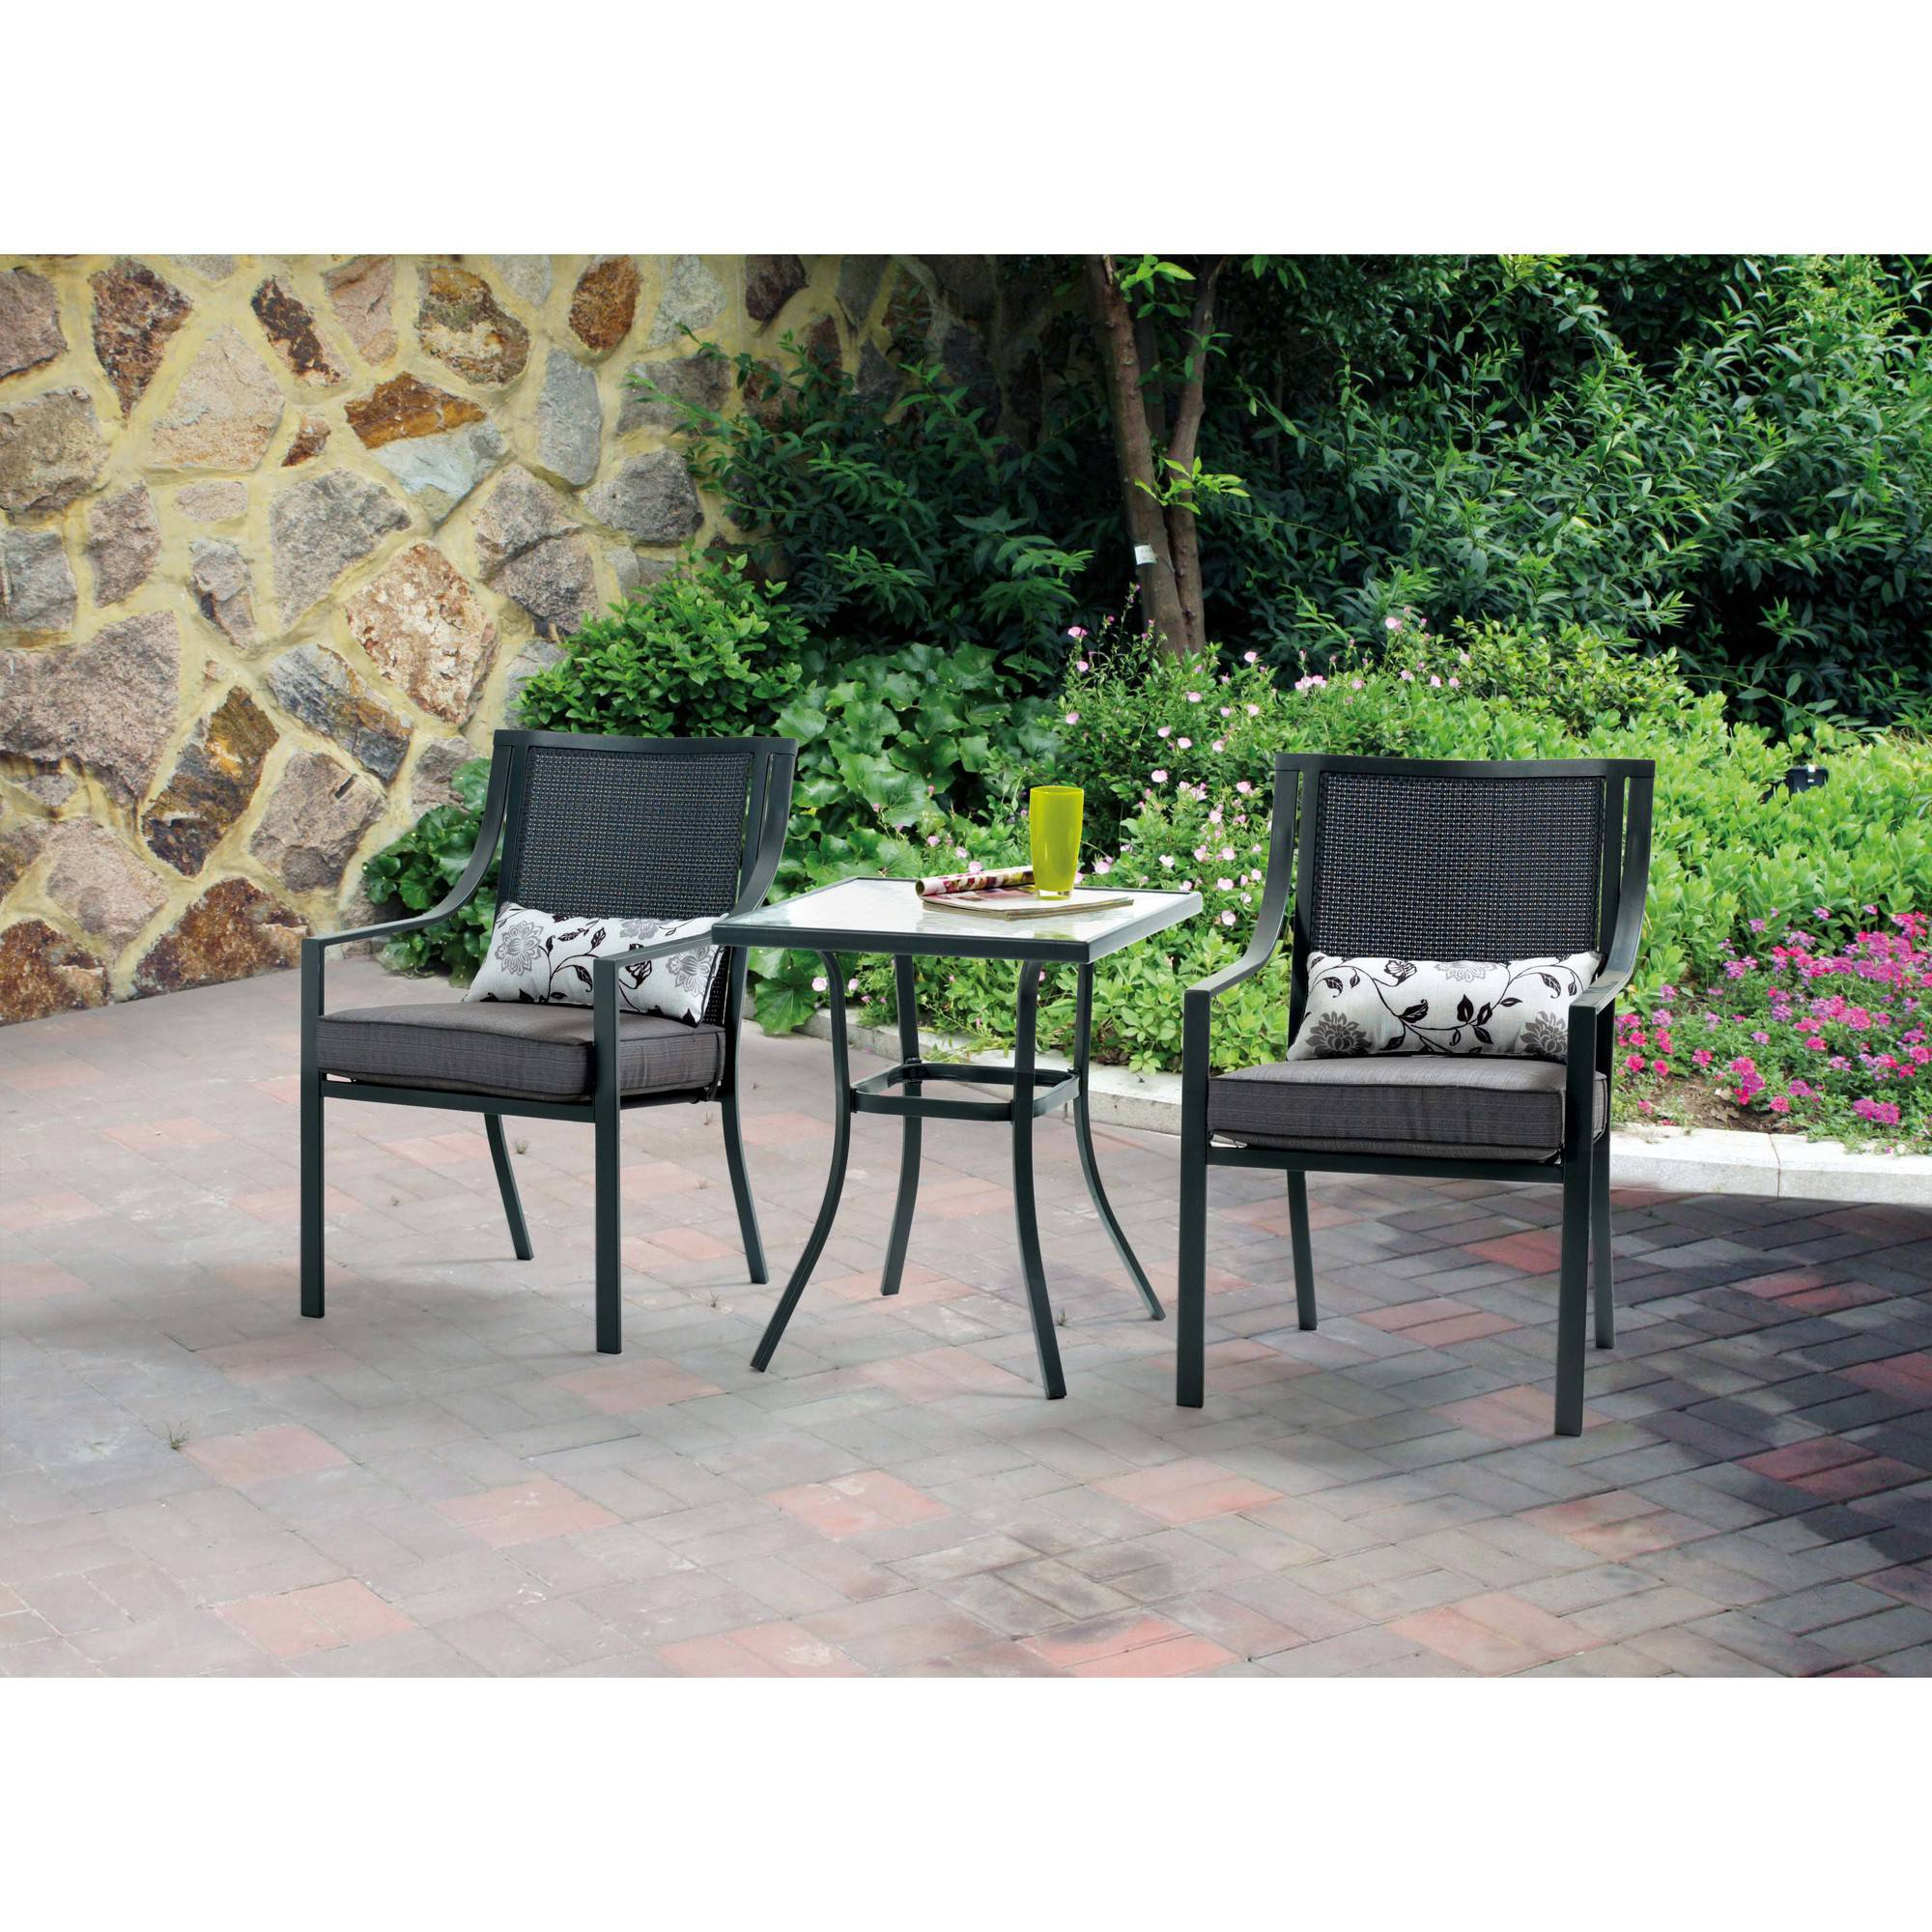 furniture patio orders inquire park sets living severna plus special in custom available set outdoor store porch annapolis